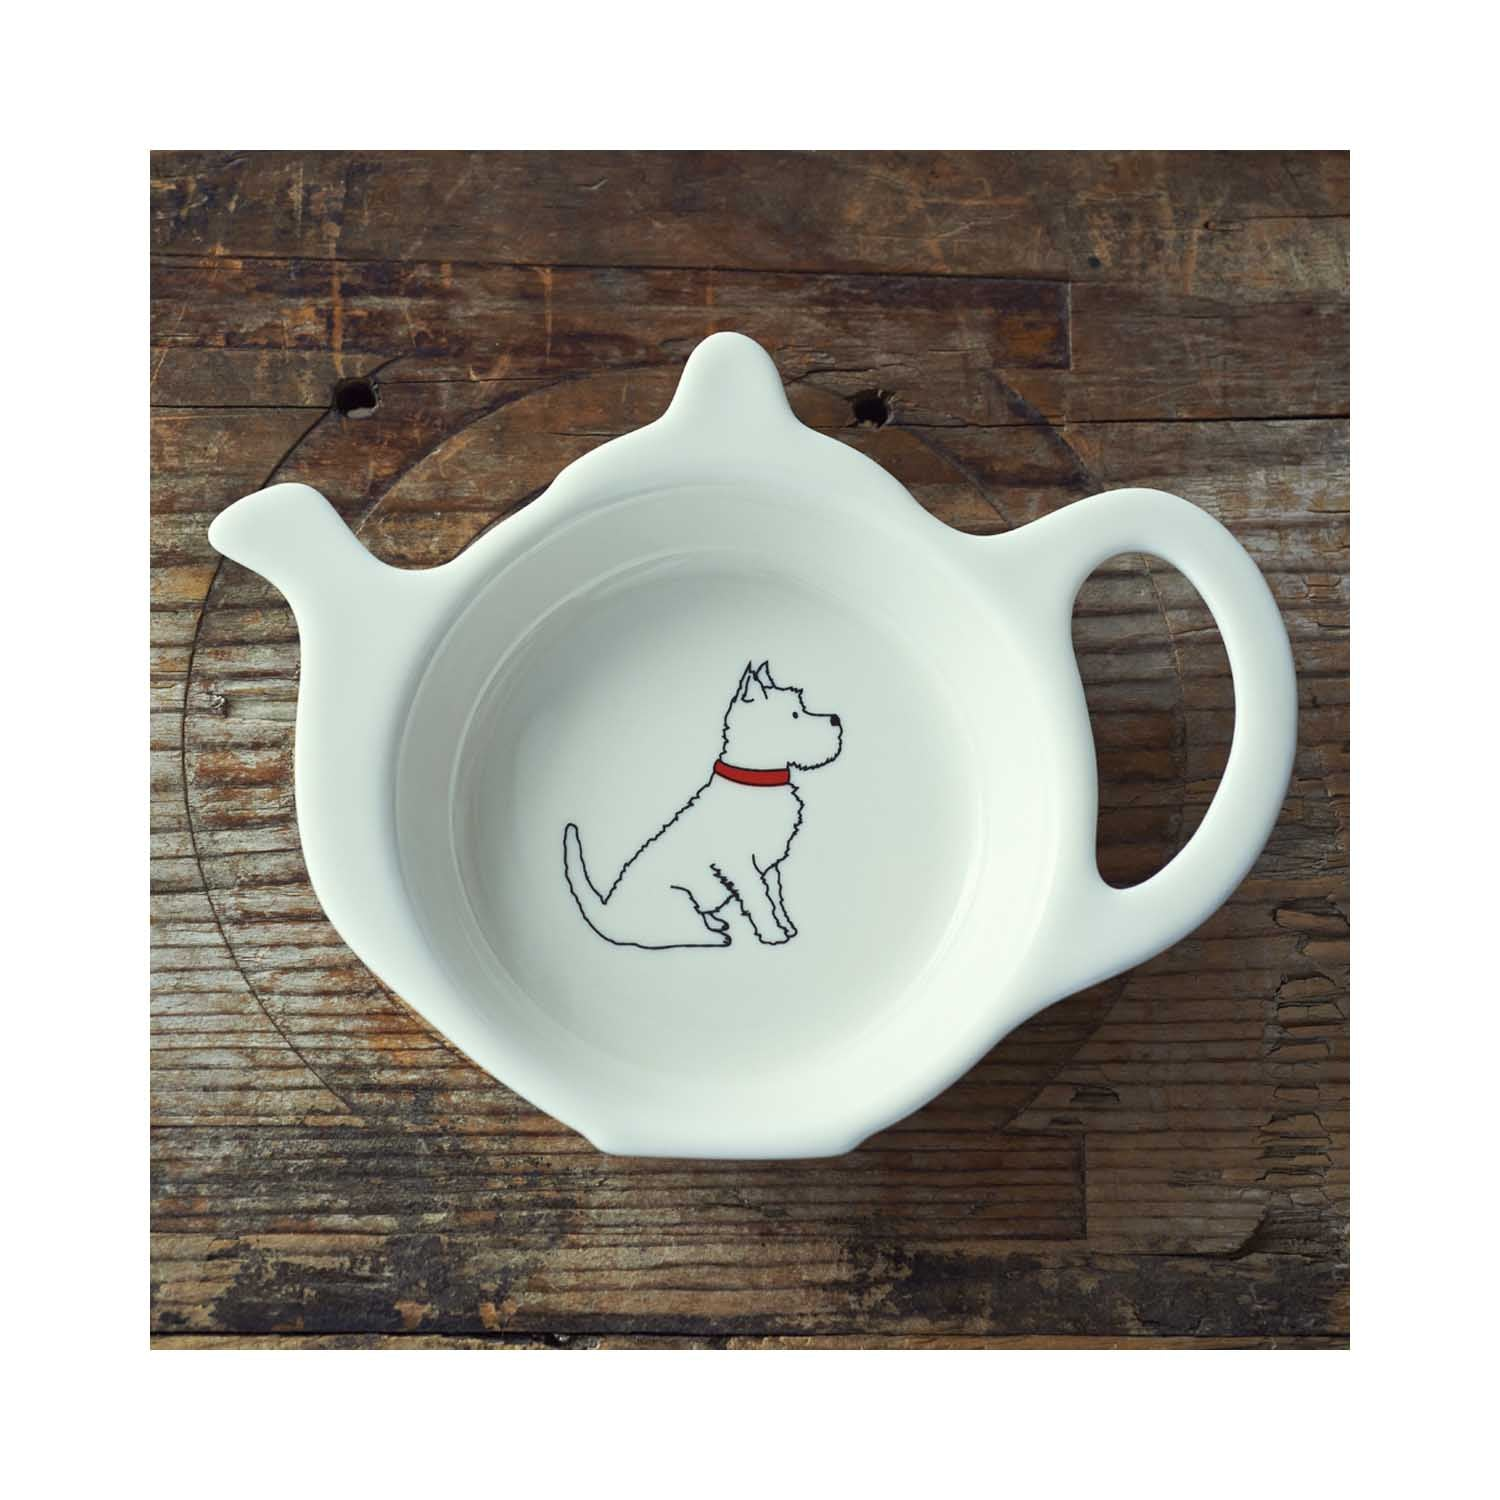 Dog Lover Gifts available at Dog Krazy Gifts - Frank the Westie Teabag Dish - part of the Sweet William range available from www.DogKrazyGifts.co.uk